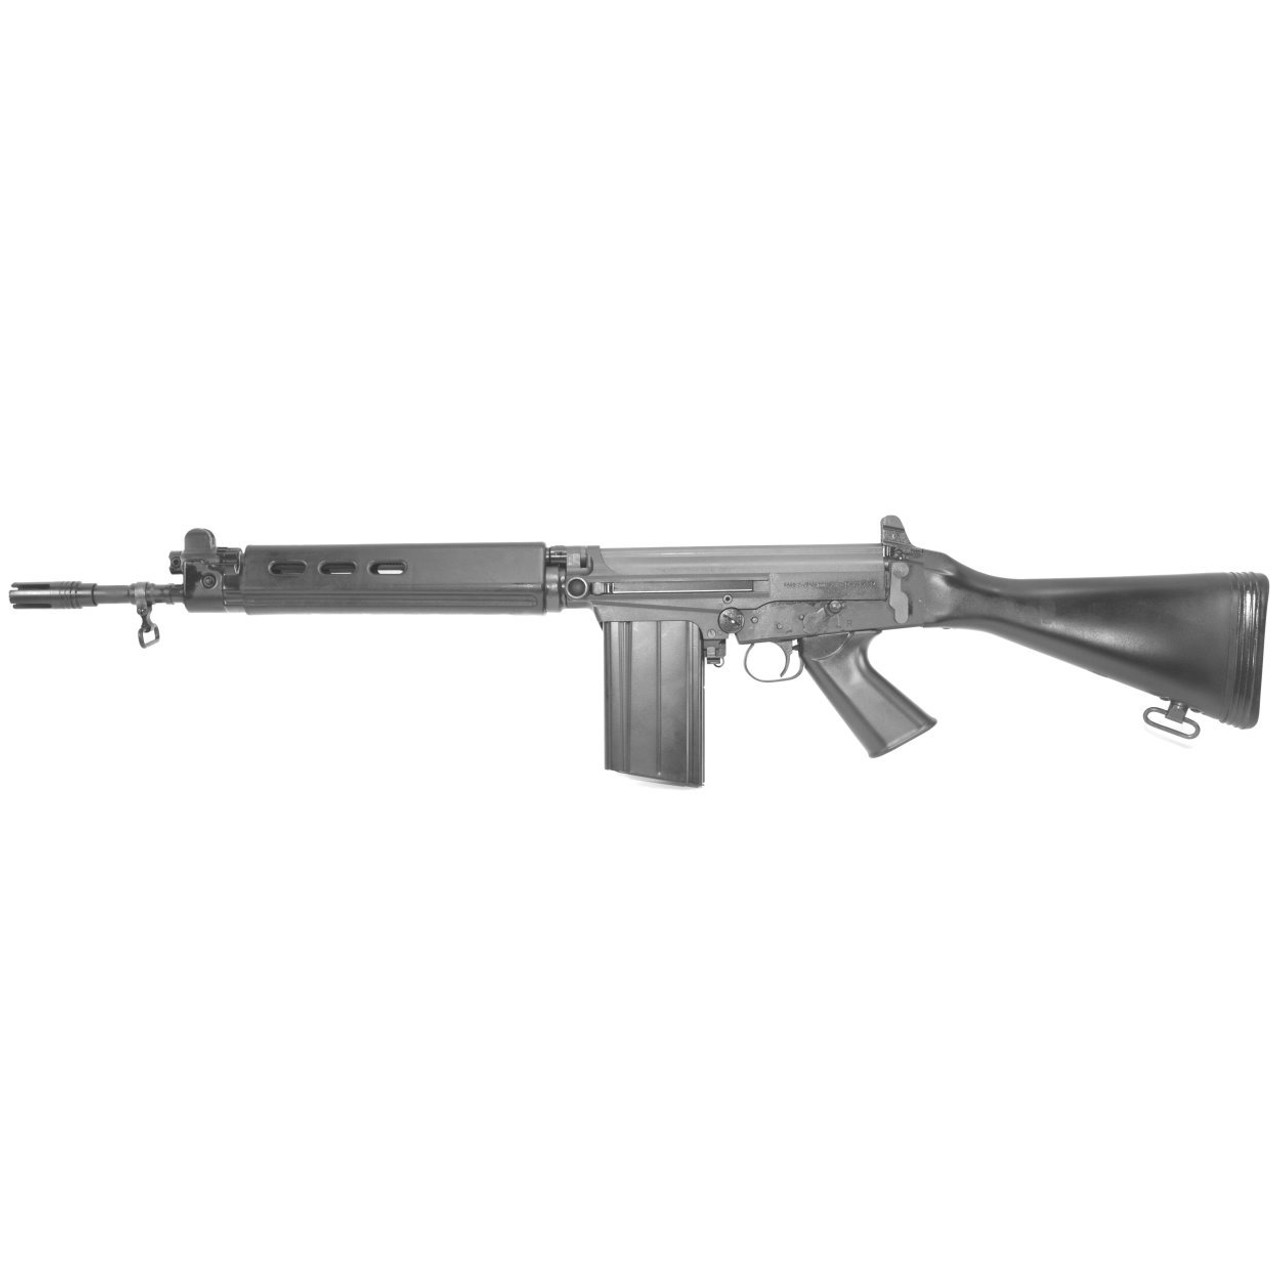 DS ARMS FAL SA58 Voyager 16in CALIFORNIA LEGAL - .308/7.62x51